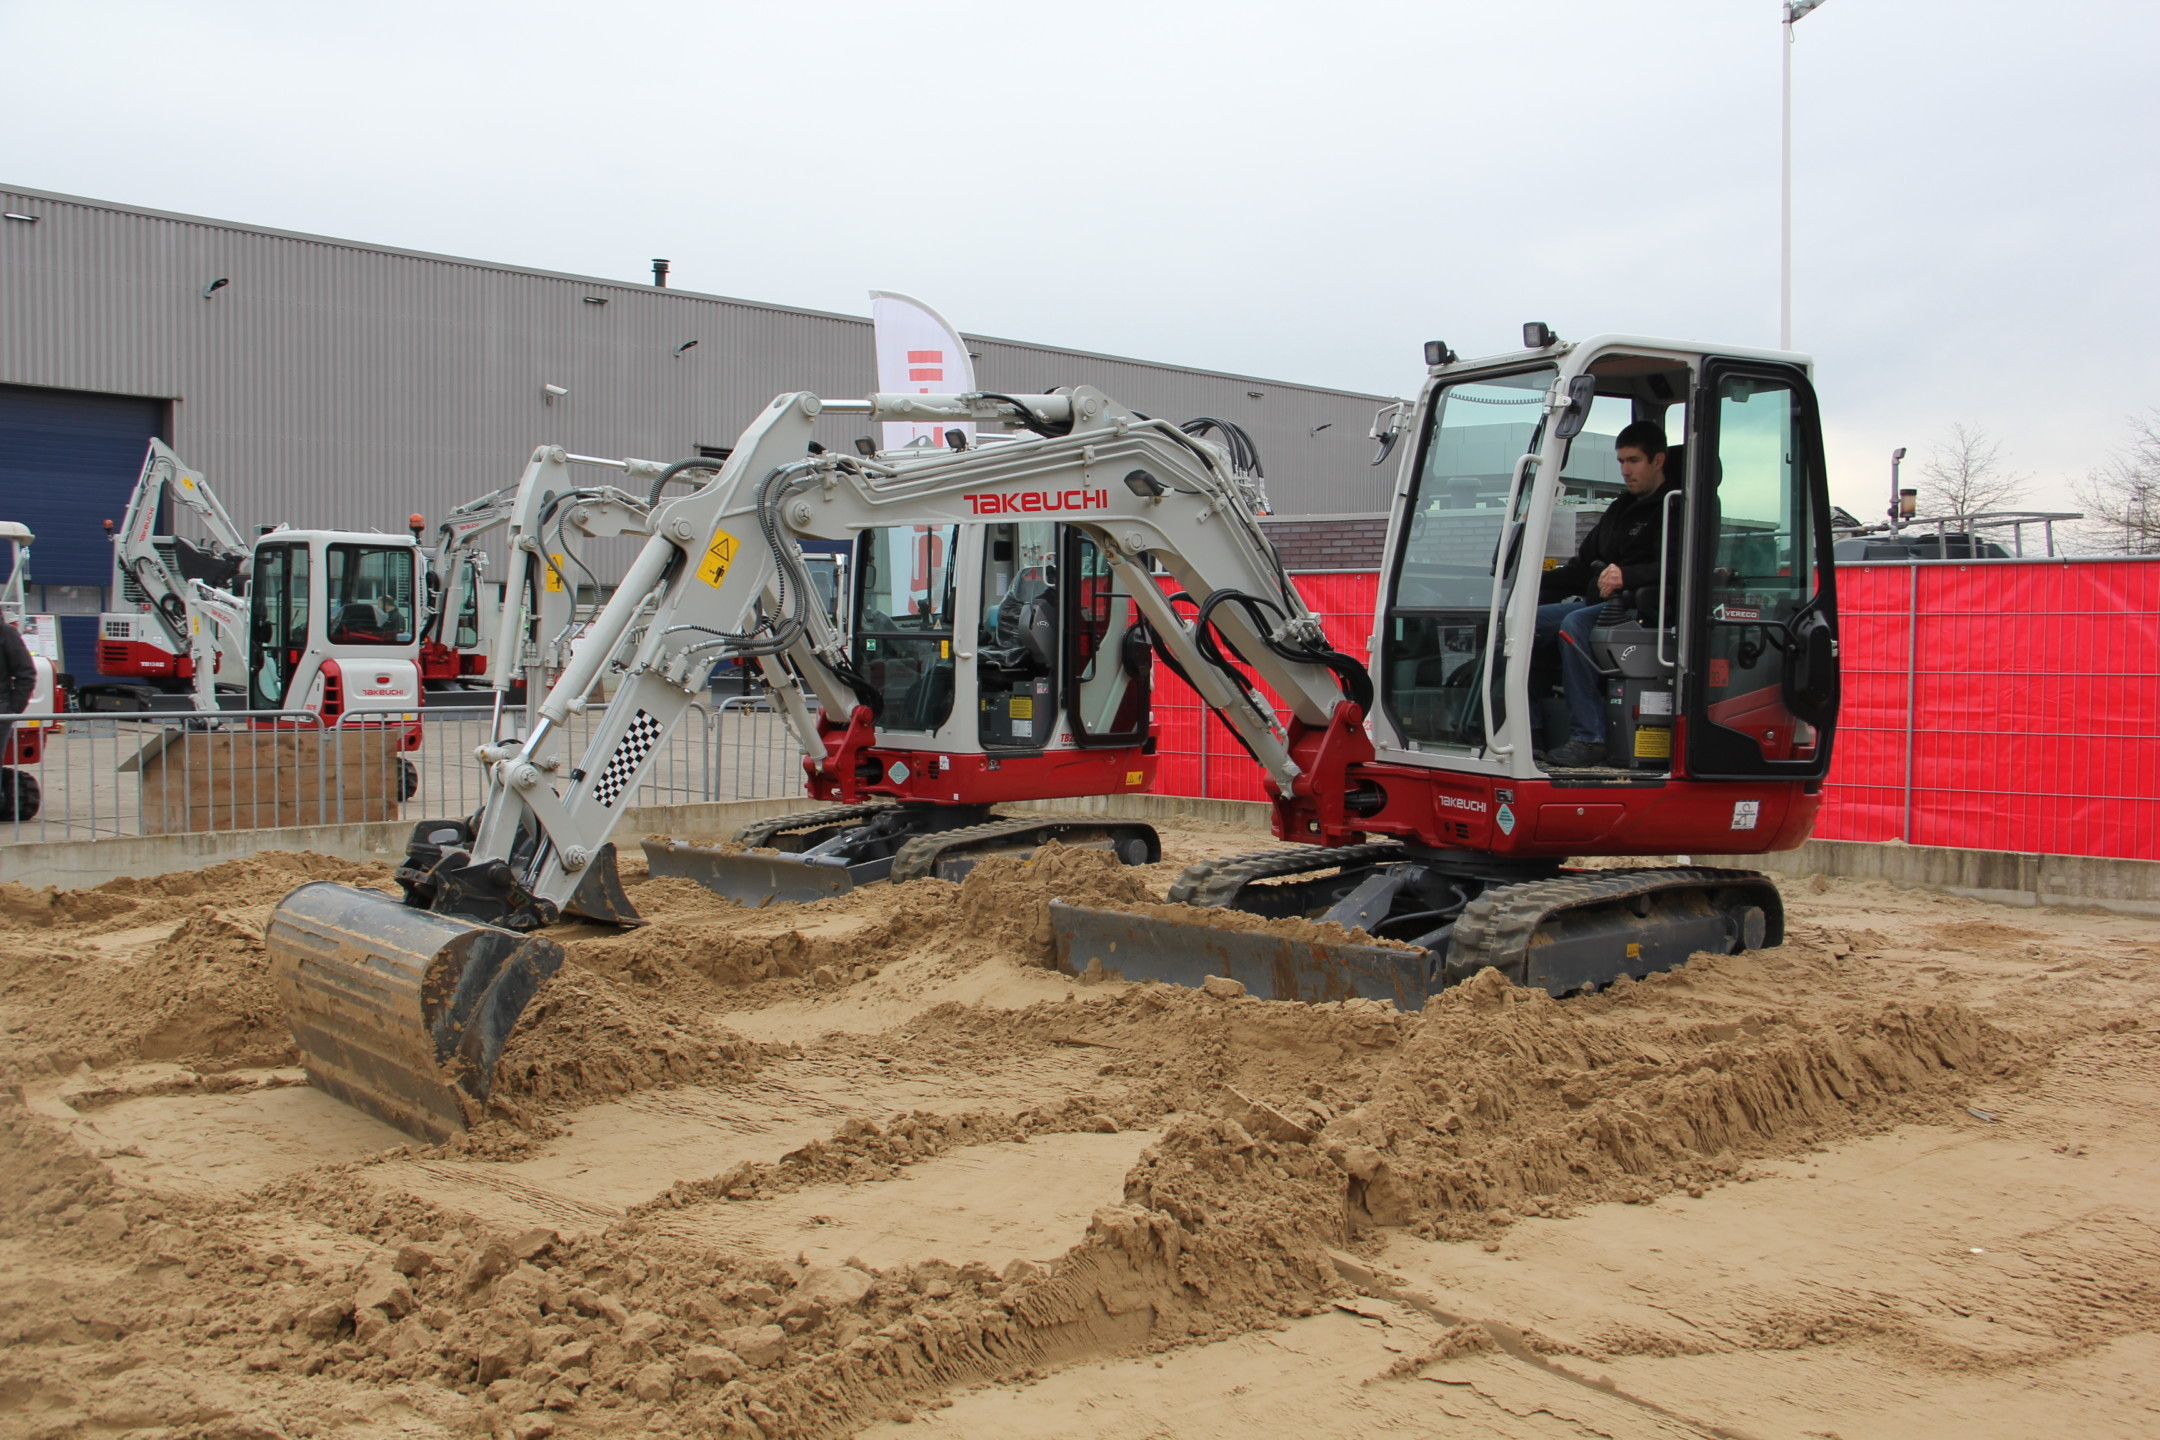 demo rit Takeuchi